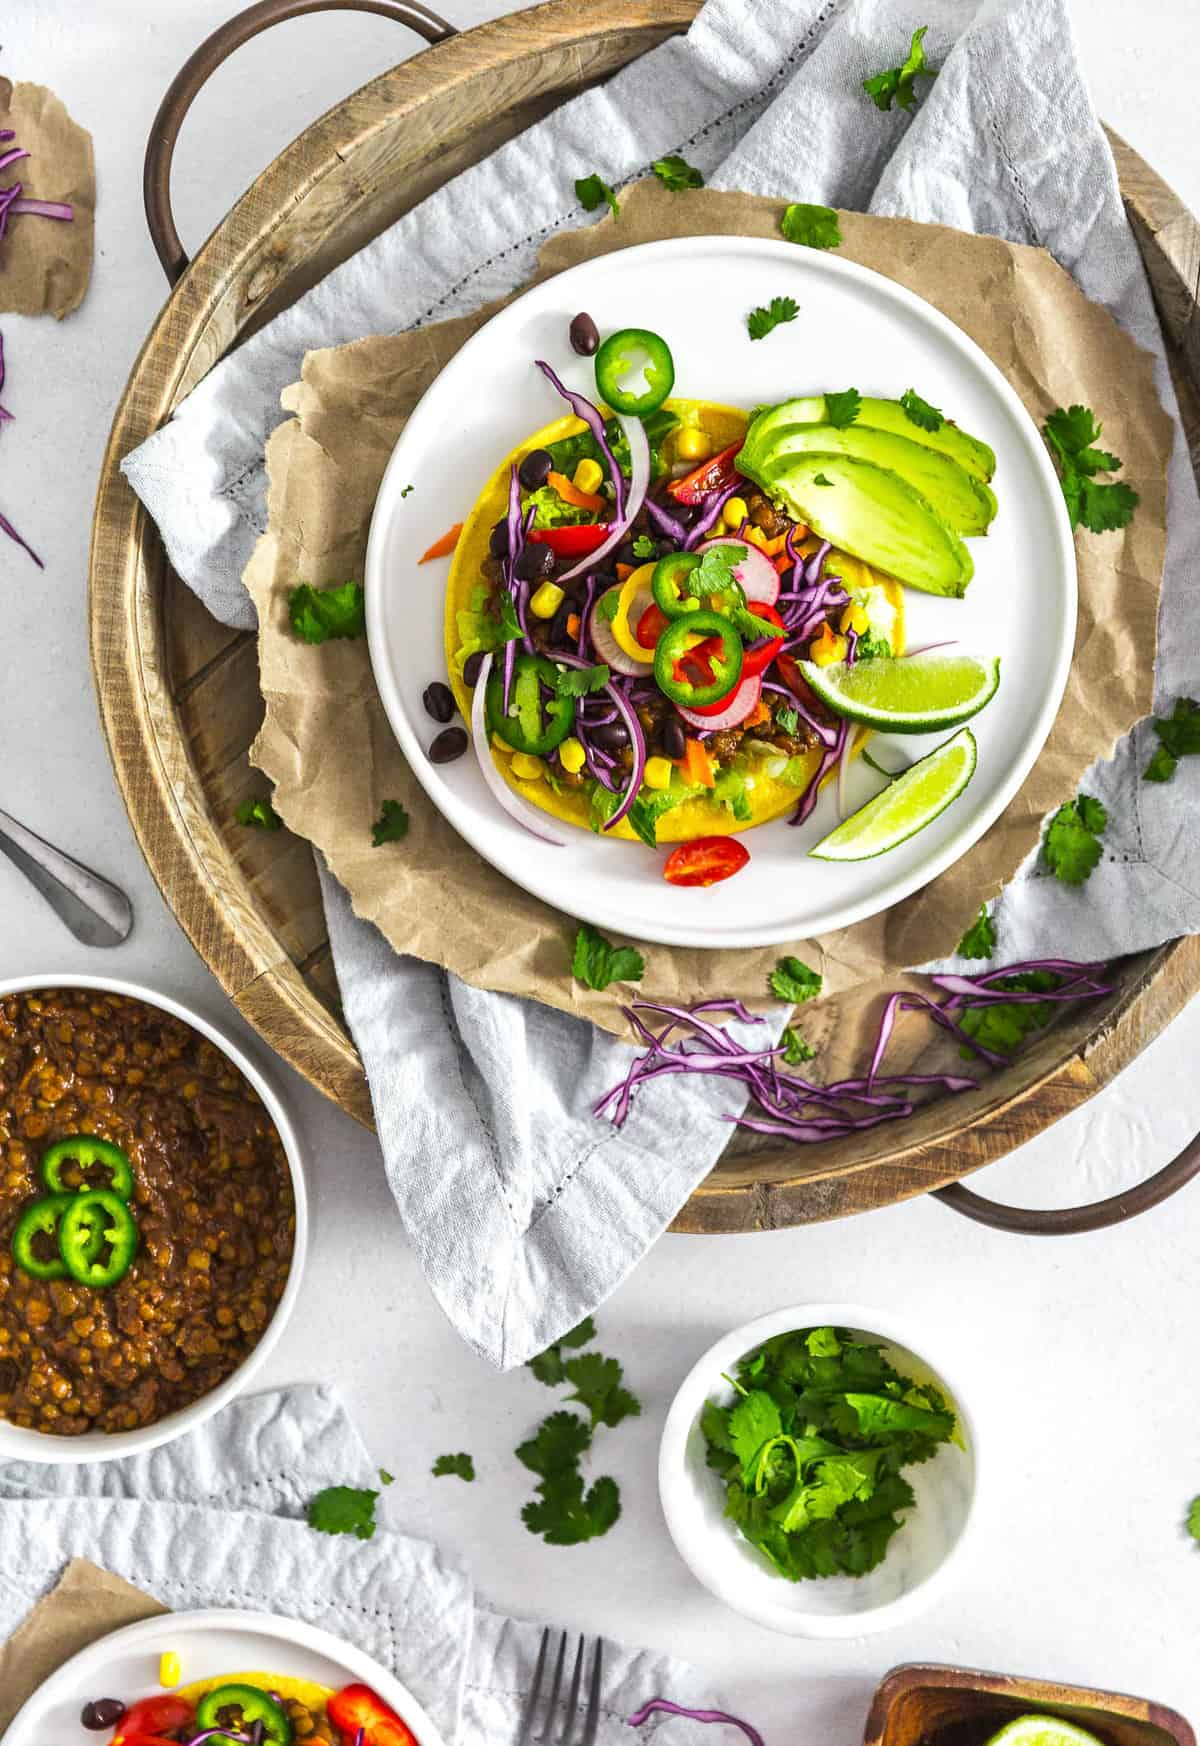 Instant pot lentil tacos monkey and me kitchen adventures instant pot lentil tacos plant based vegan vegetarian whole food plant based forumfinder Choice Image